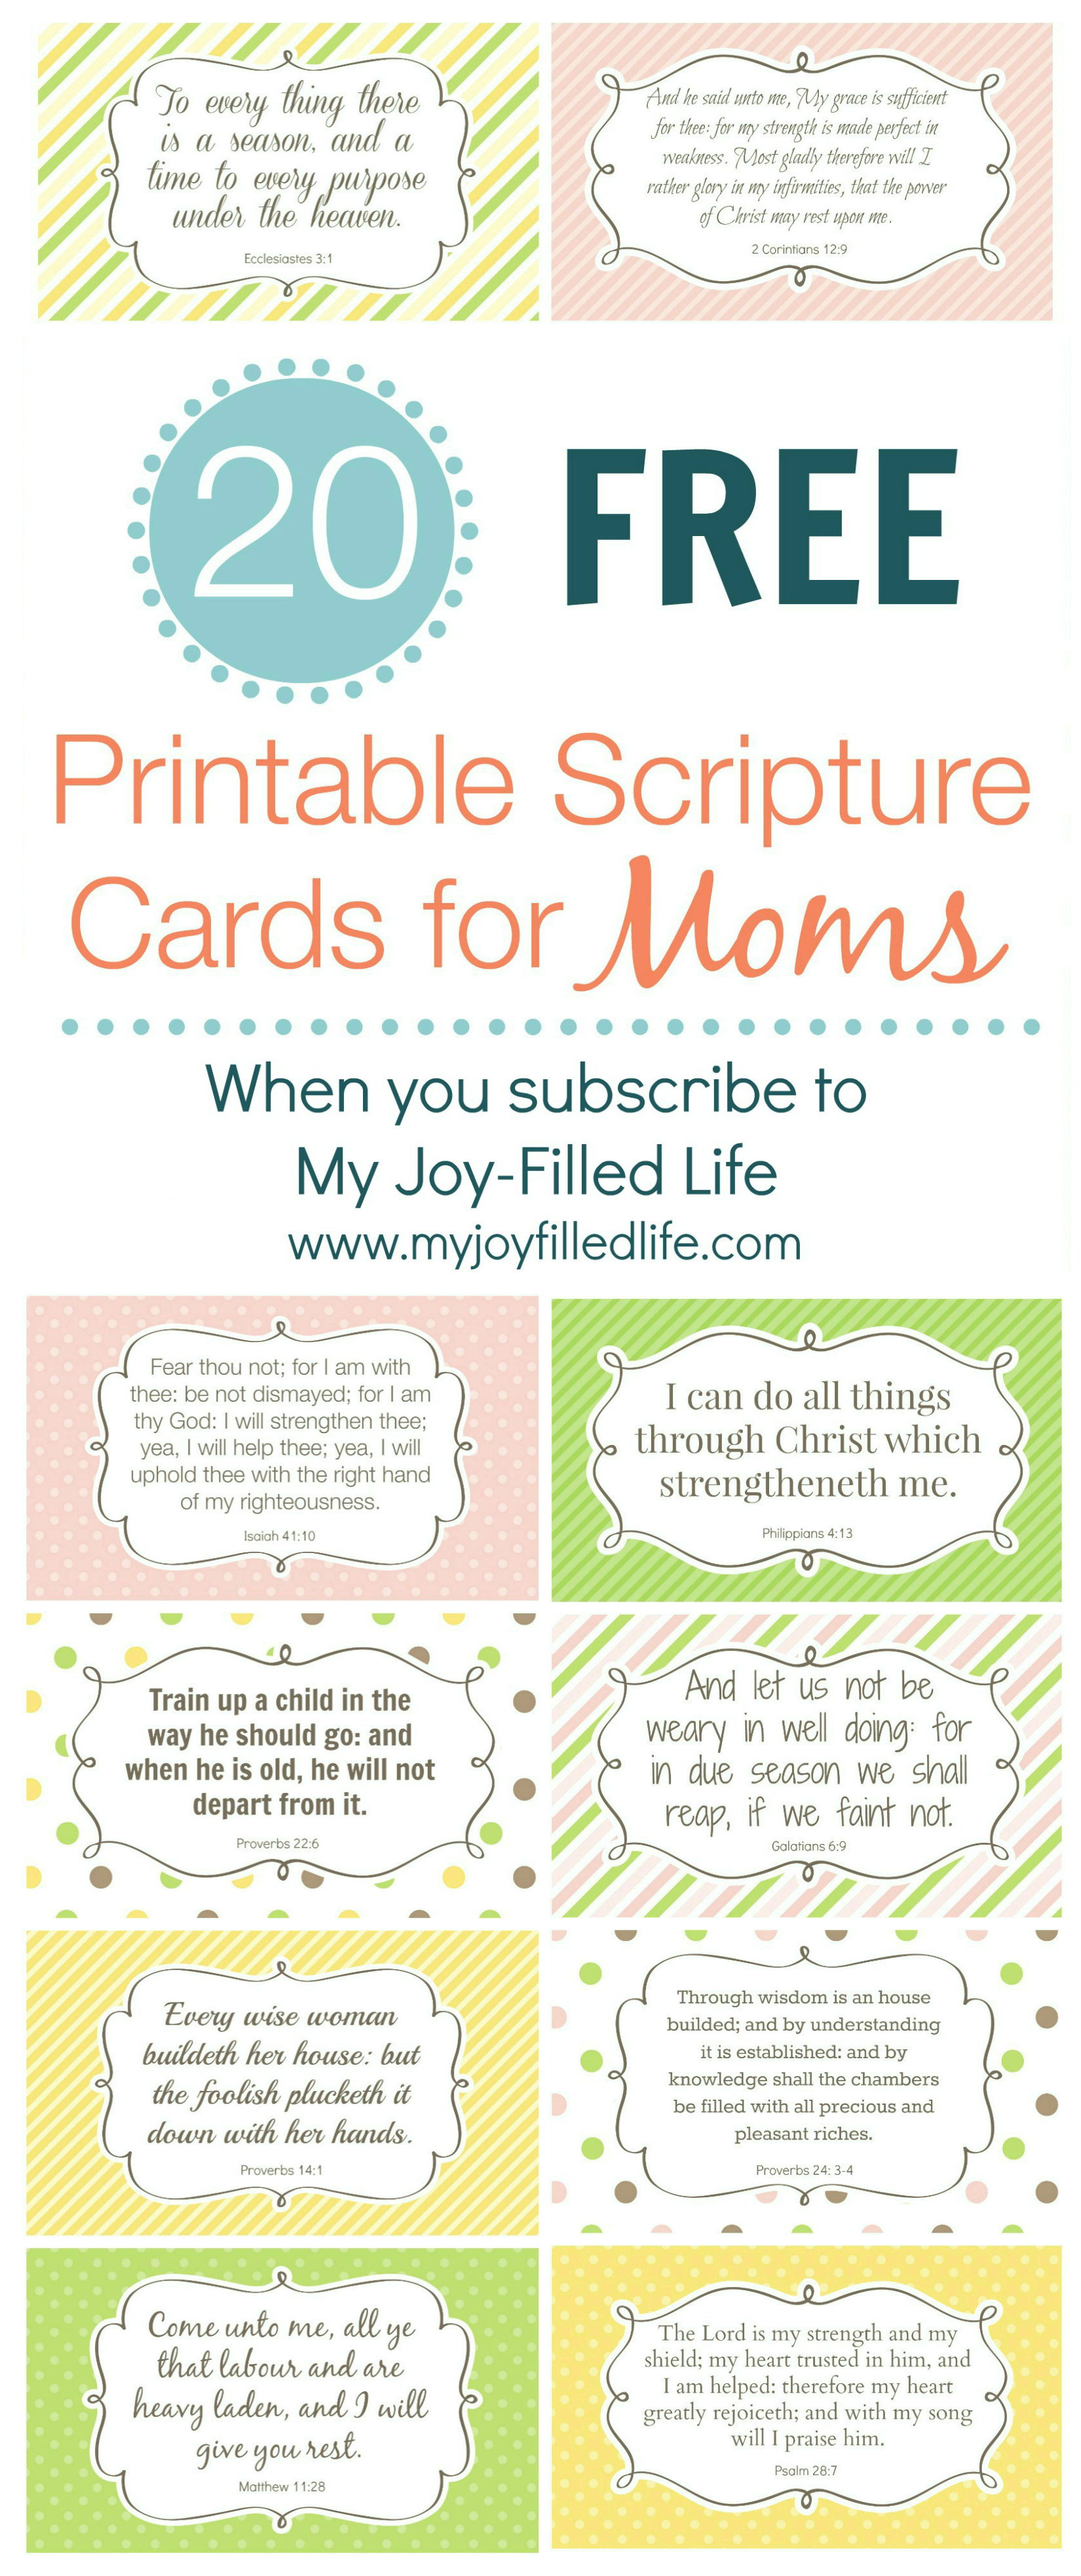 Encouragement for Moms - FREE